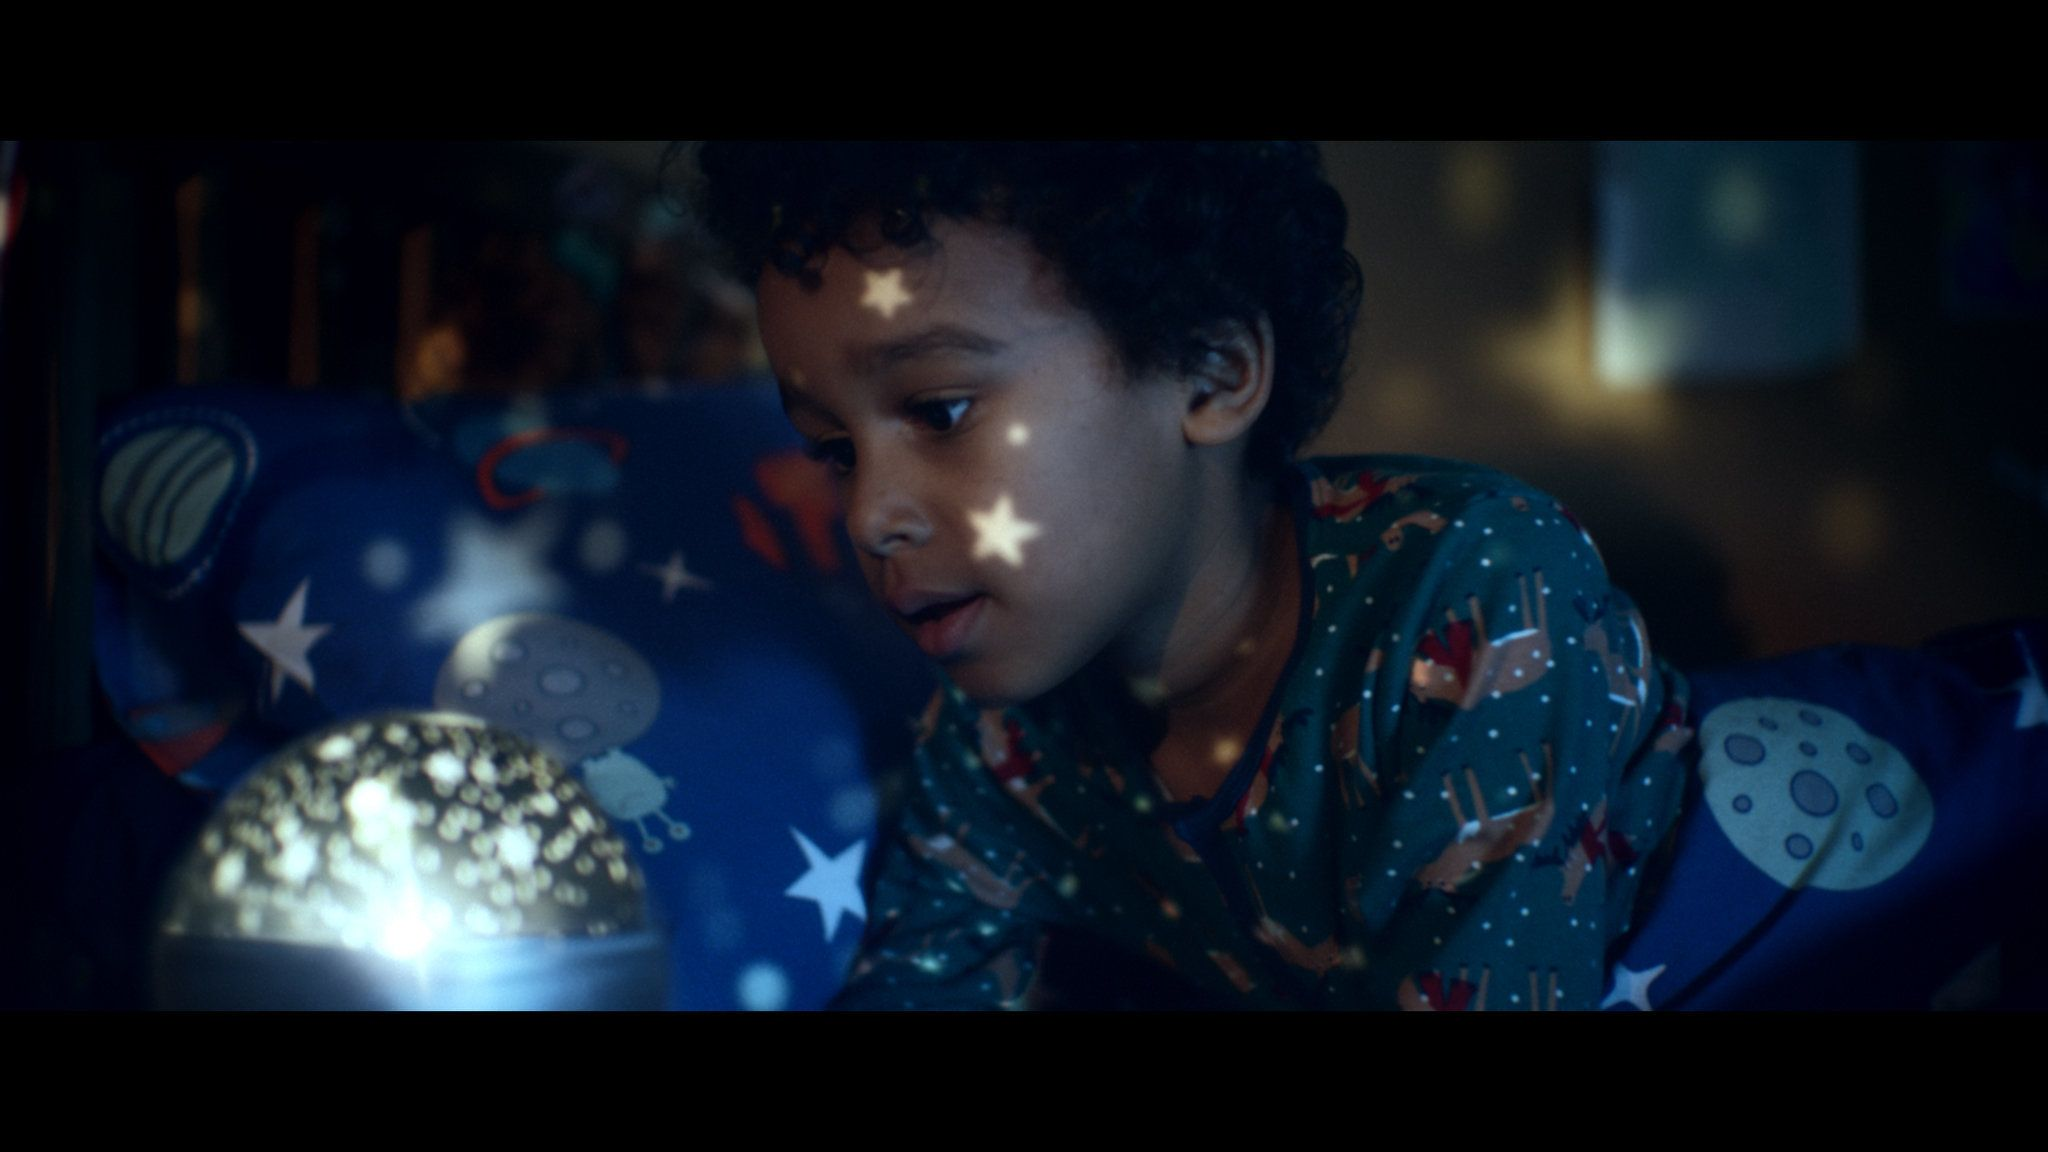 John Lewis's Festive Ad Includes An Early Christmas Present For Elbow